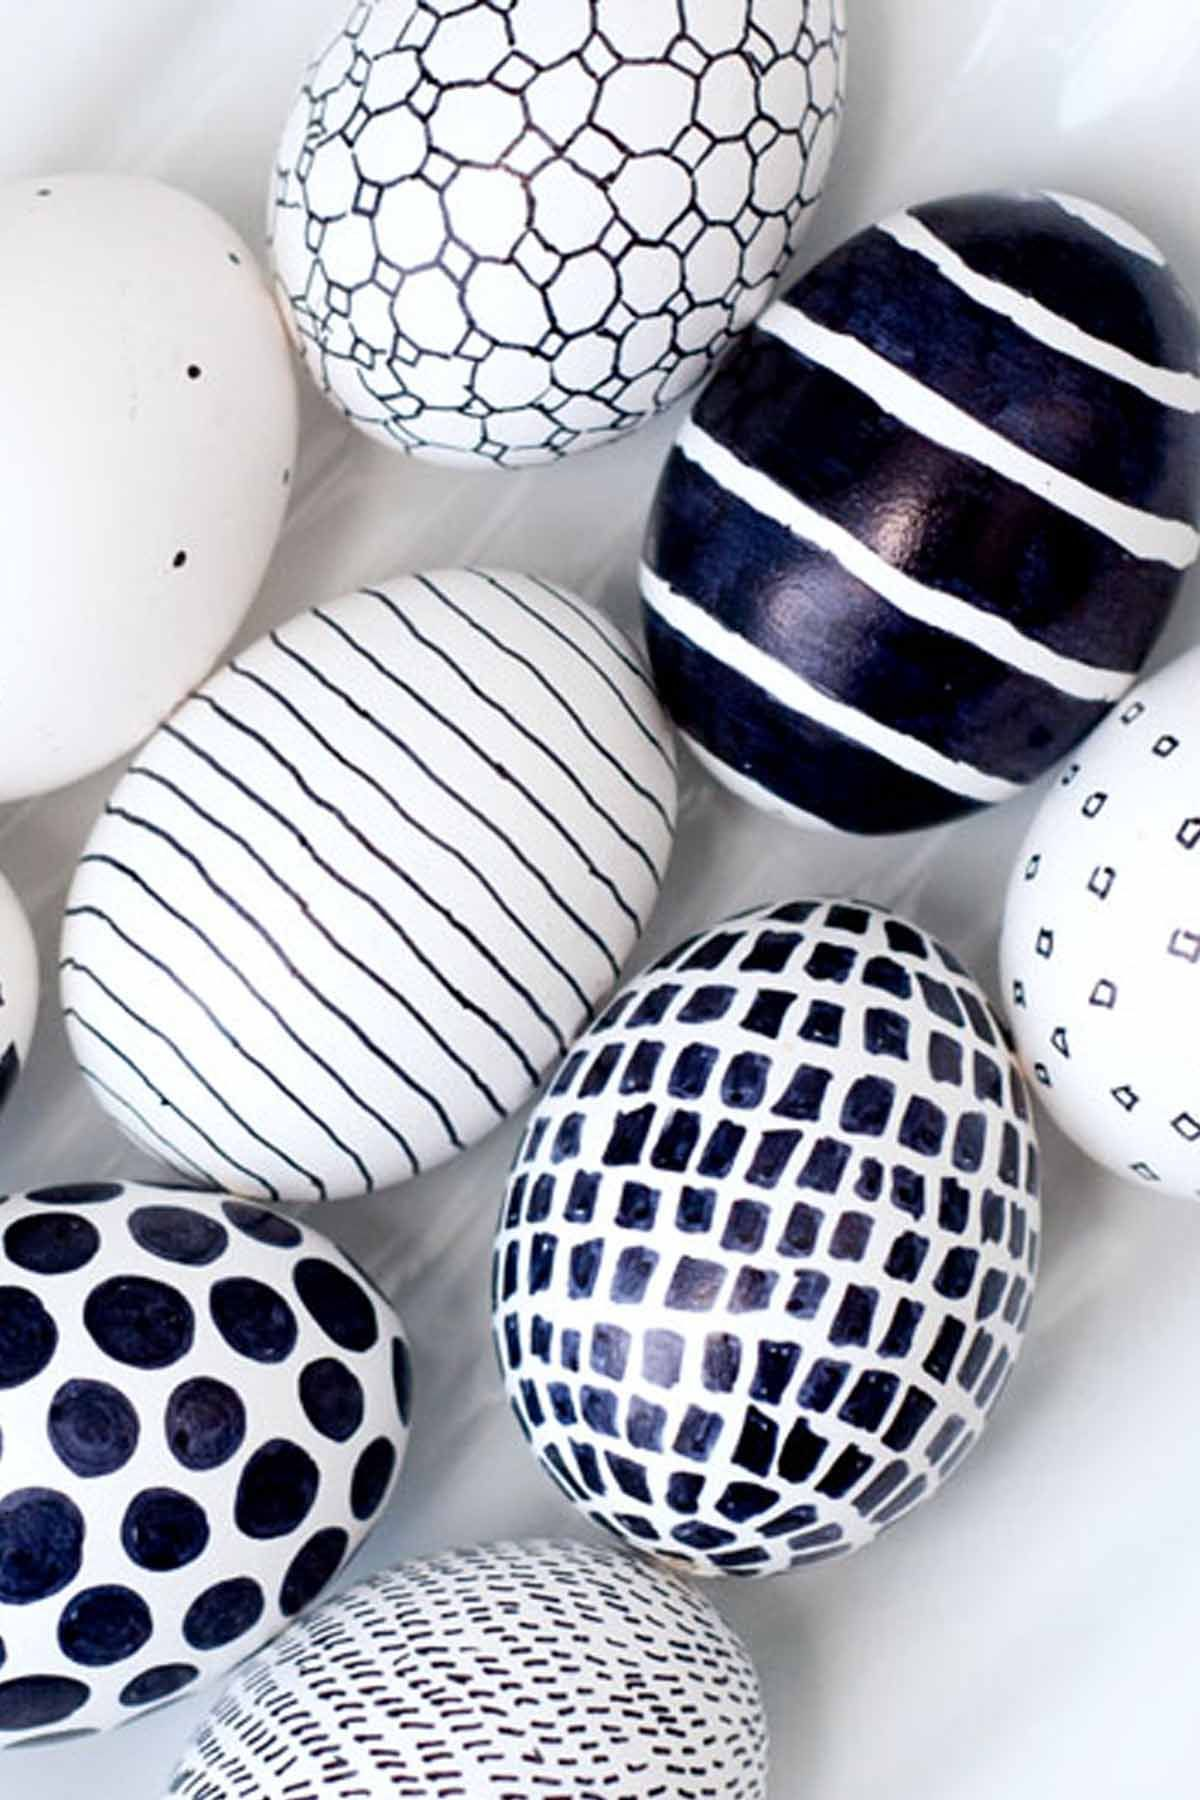 52 Cool Easter Egg Decorating Ideas - Creative Designs for Easter Eggs